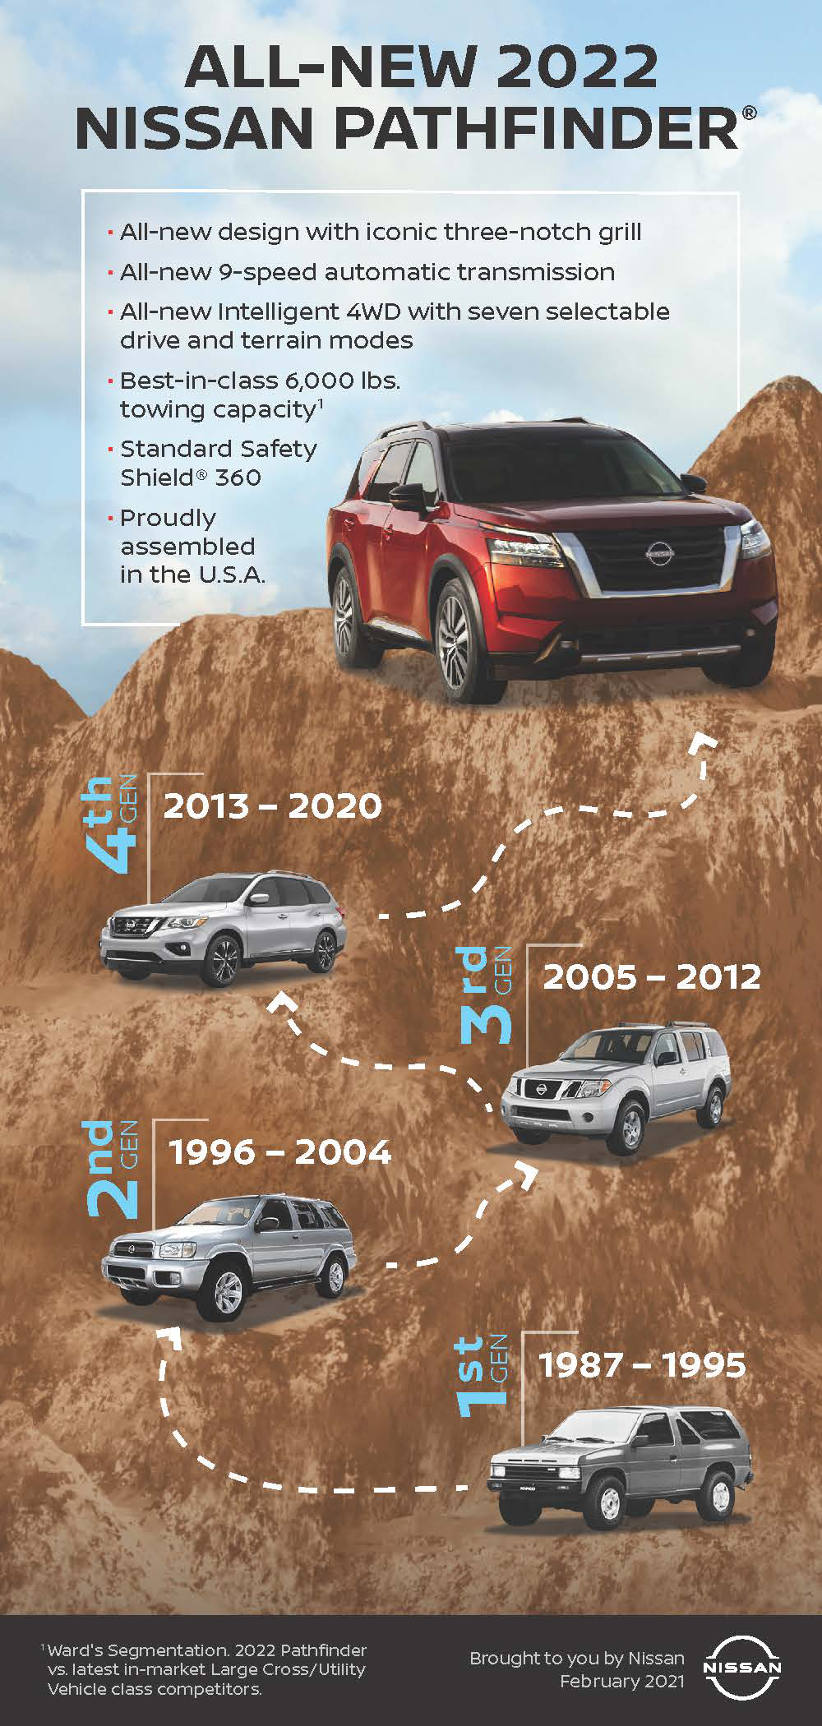 All-new 2022 Nissan Pathfinder Infographic history